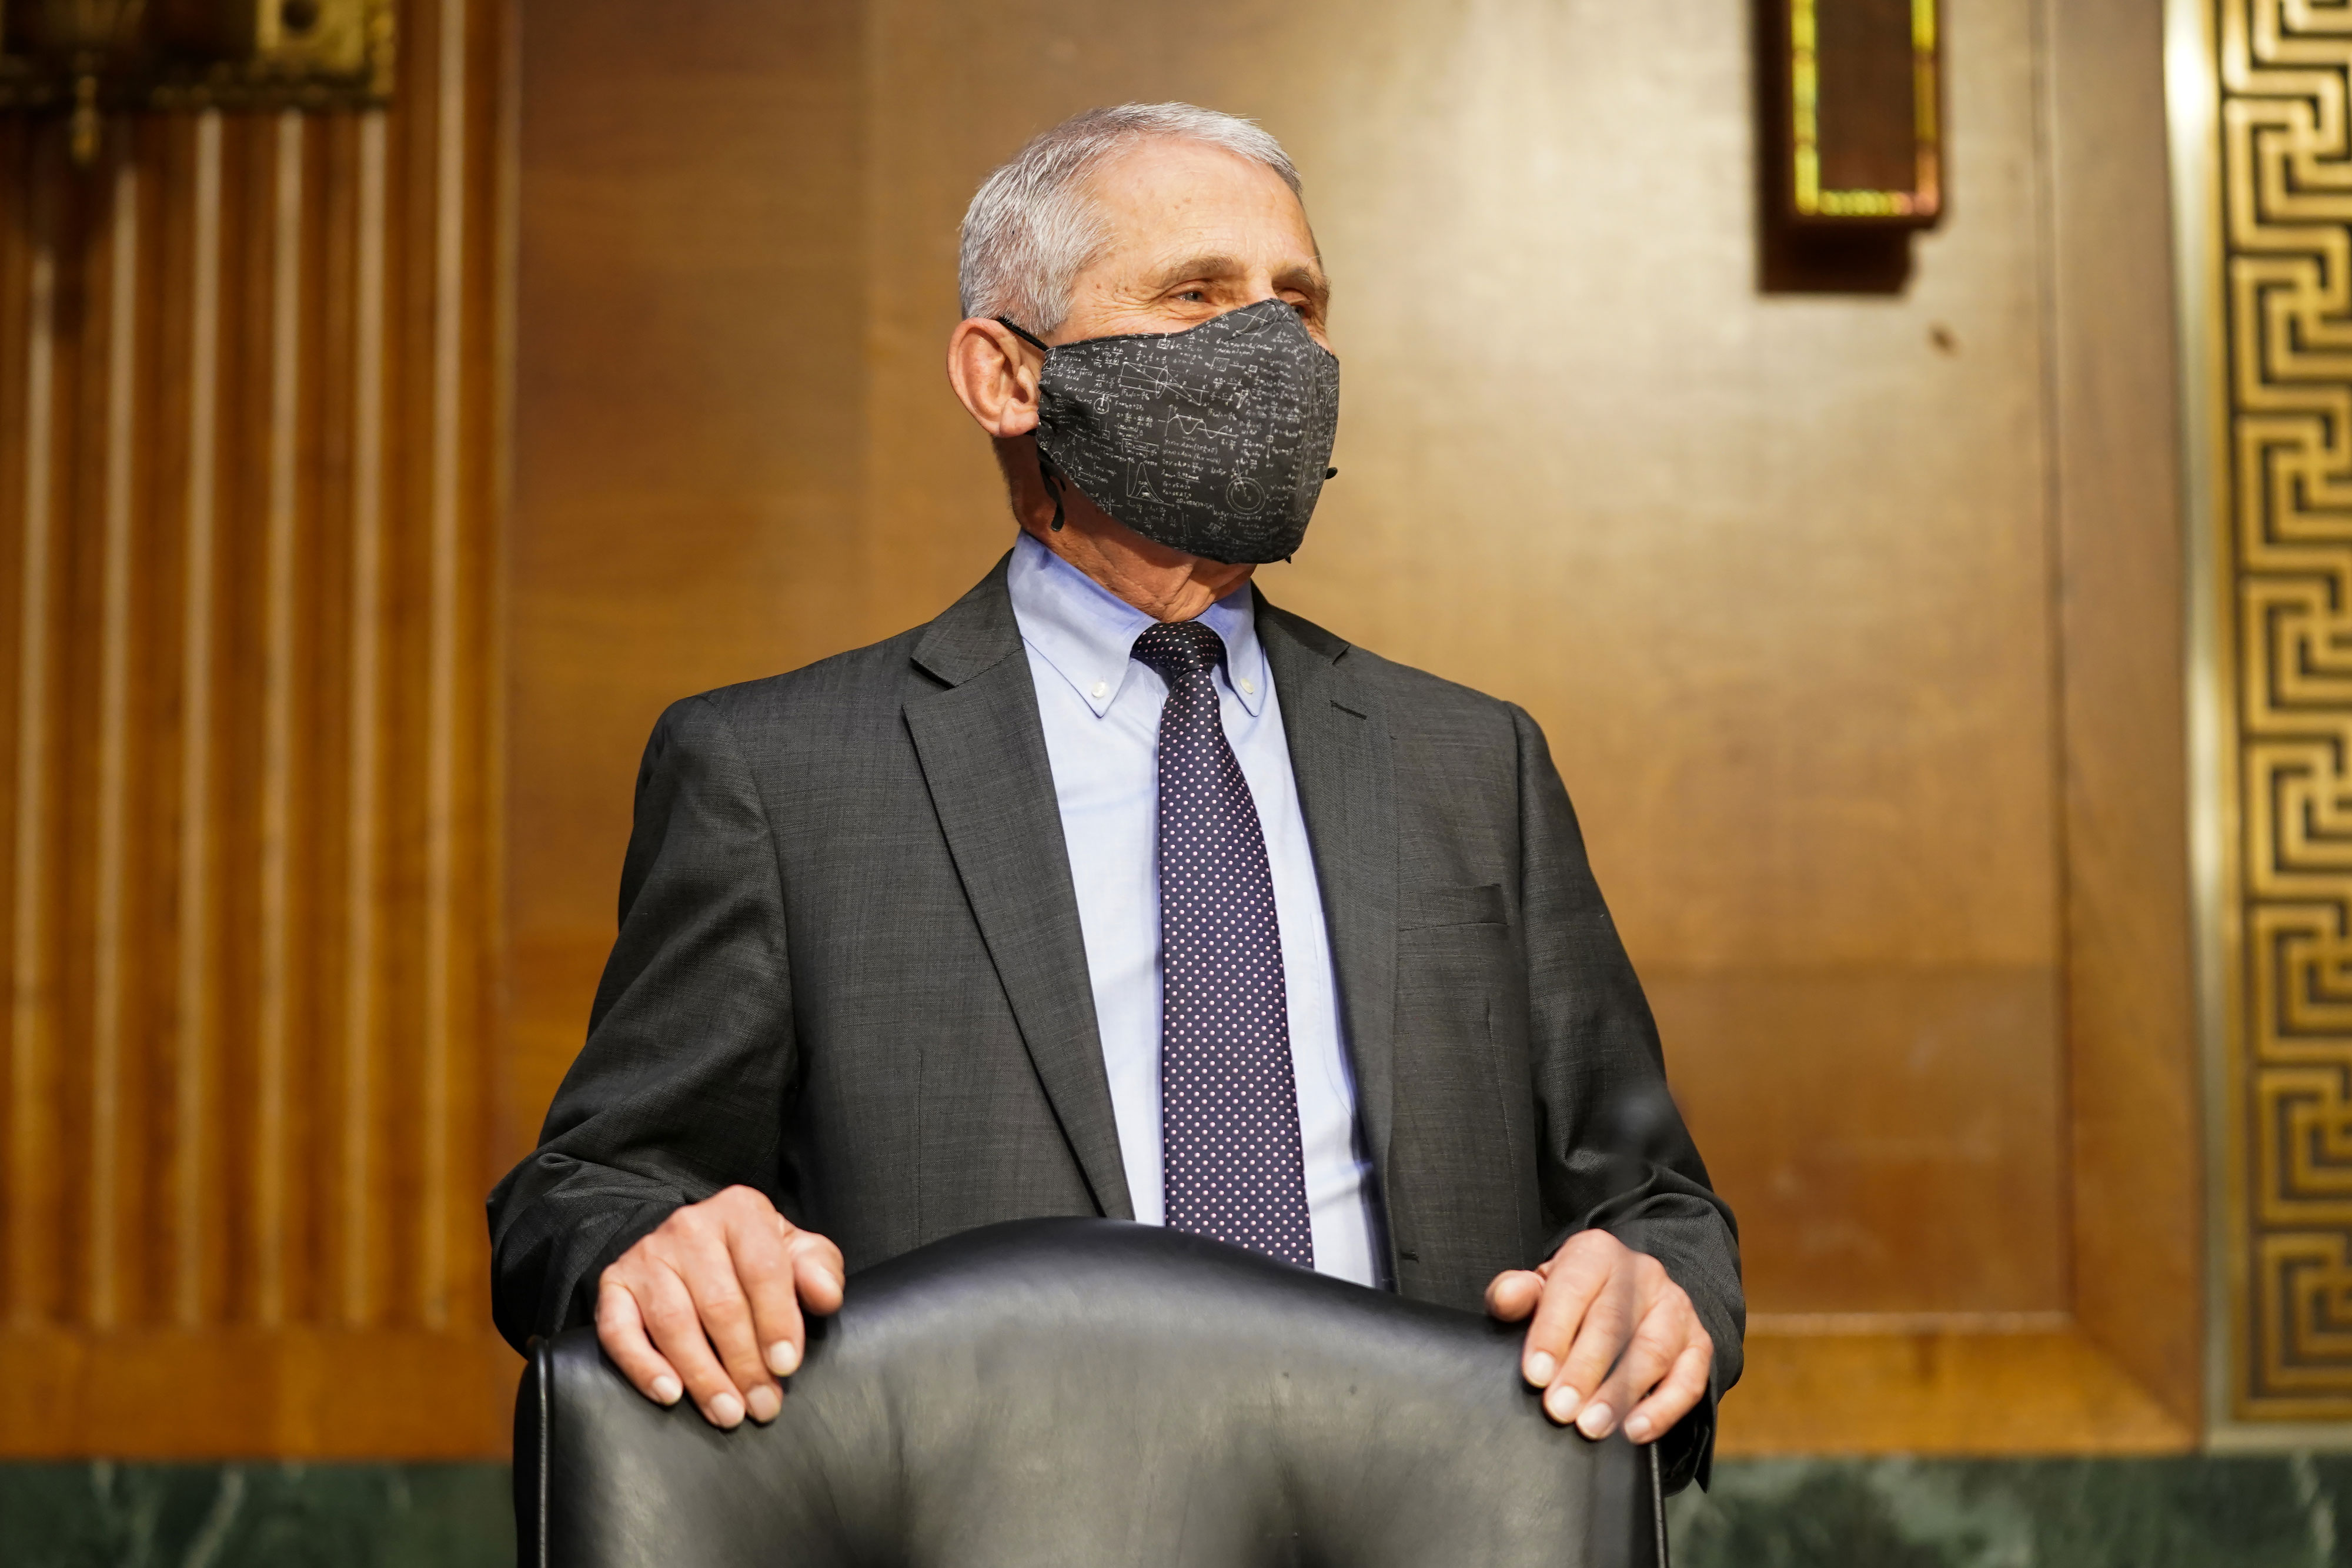 Dr. Anthony Fauci, director of the National Institute of Allergy and Infectious Diseases, arrives for a hearing in Washington, DC, on May 11.